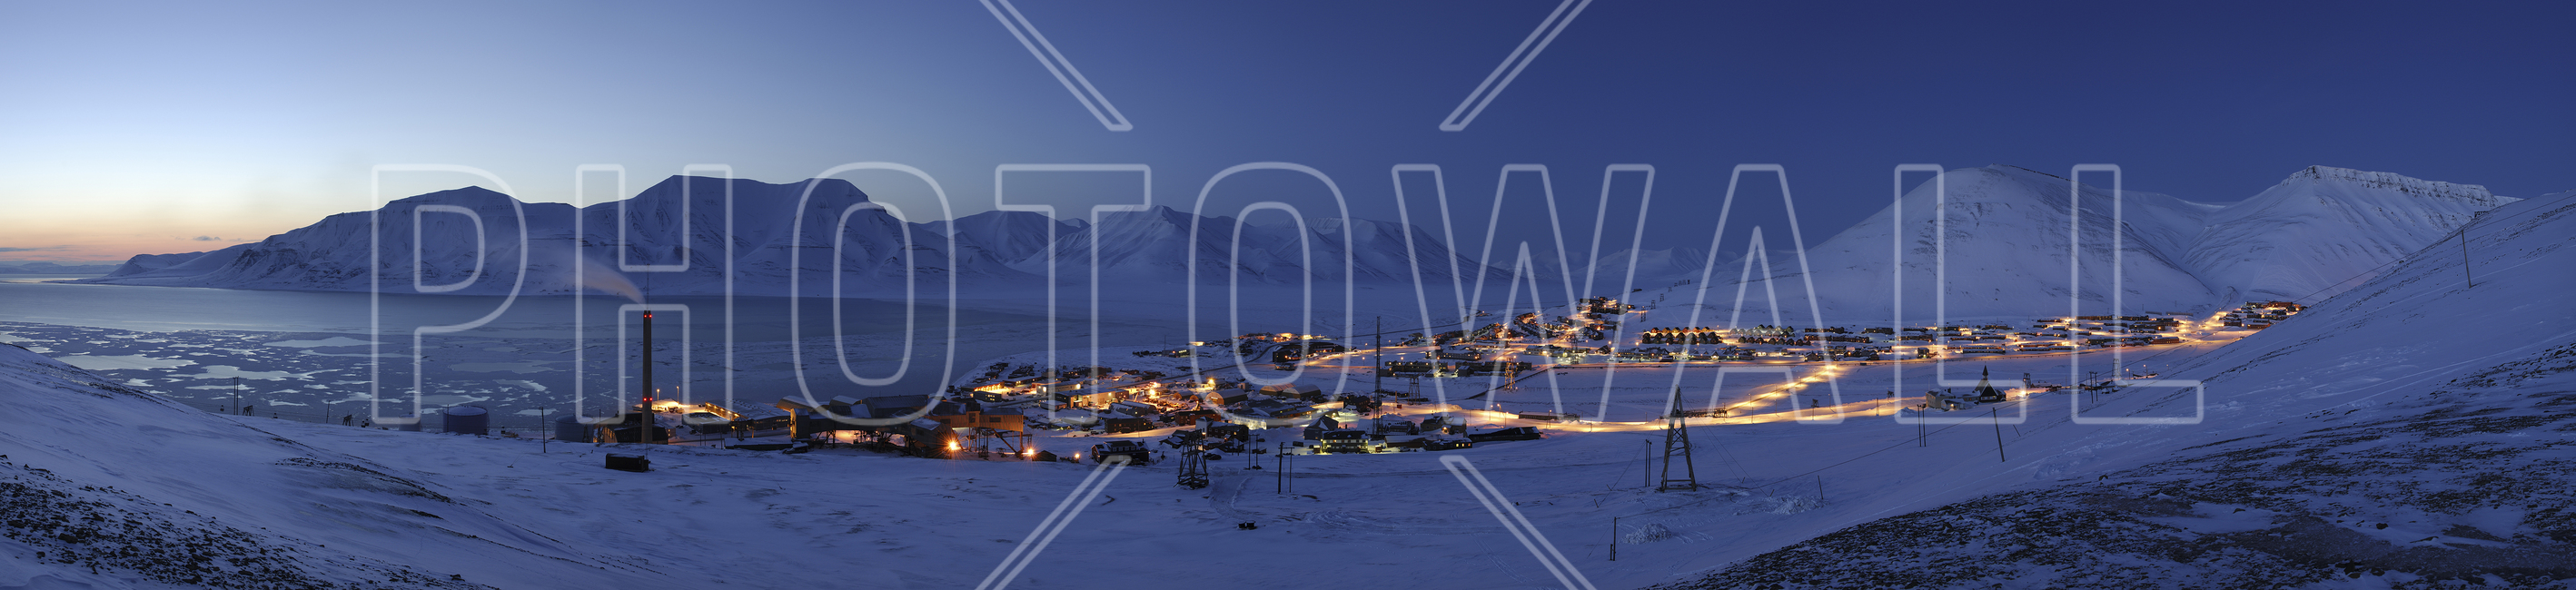 Longyearbyen by Night, Svalbard II